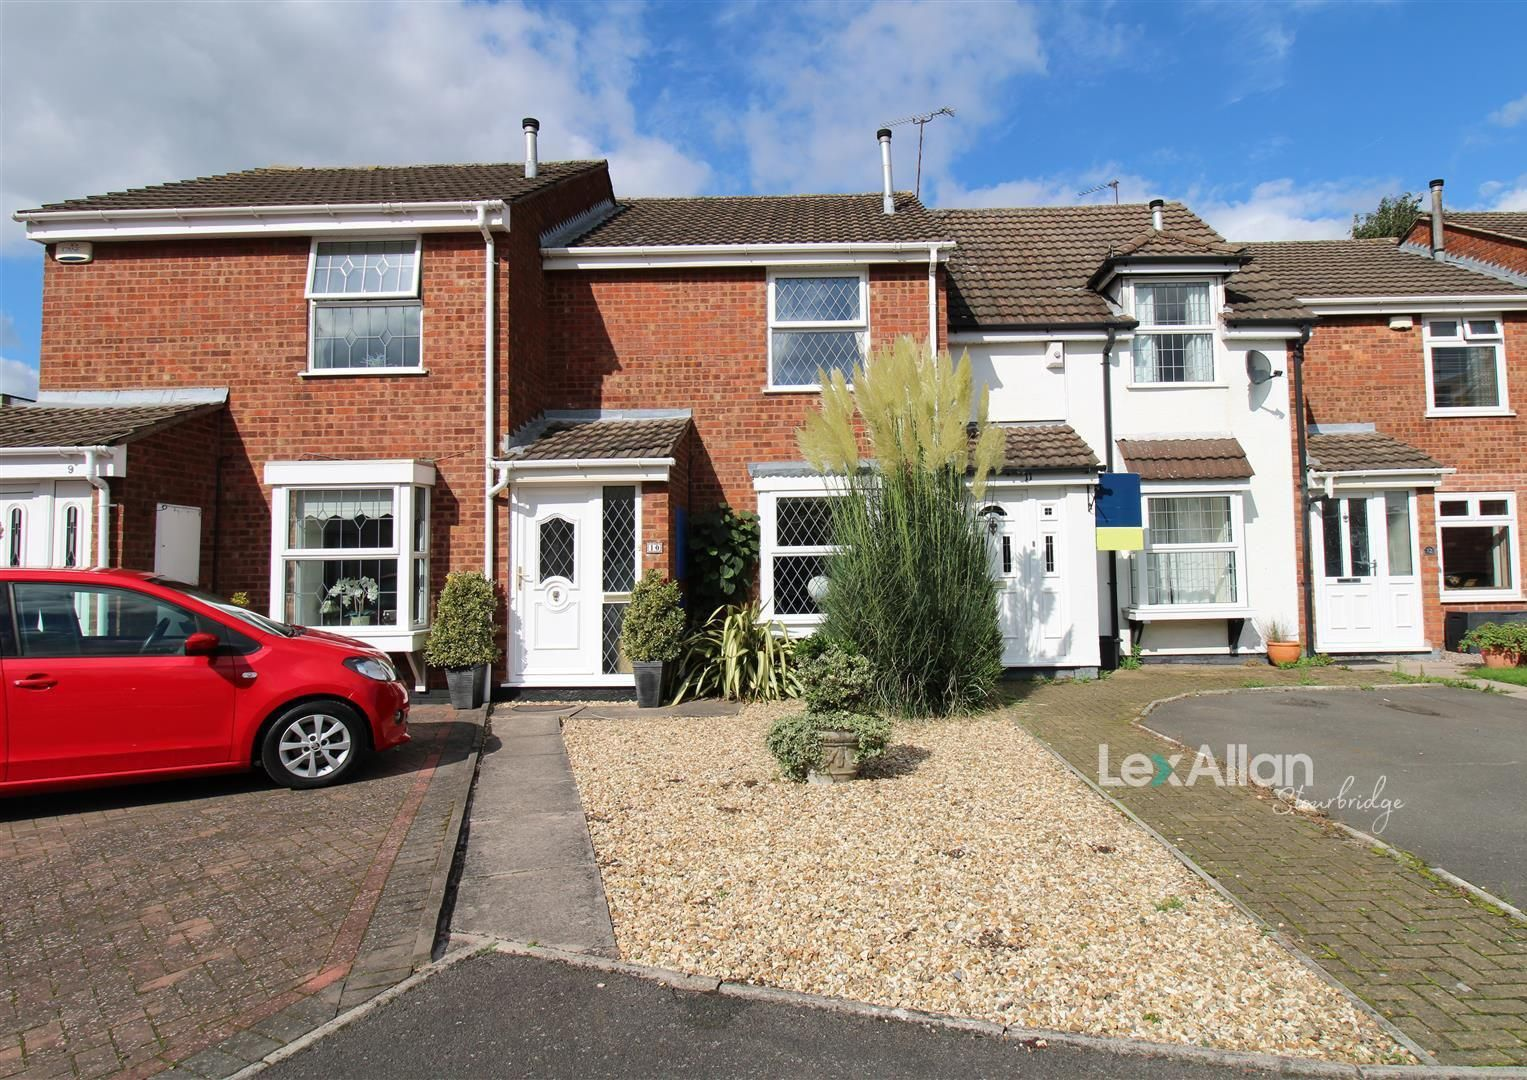 2 bed terraced for sale, DY5